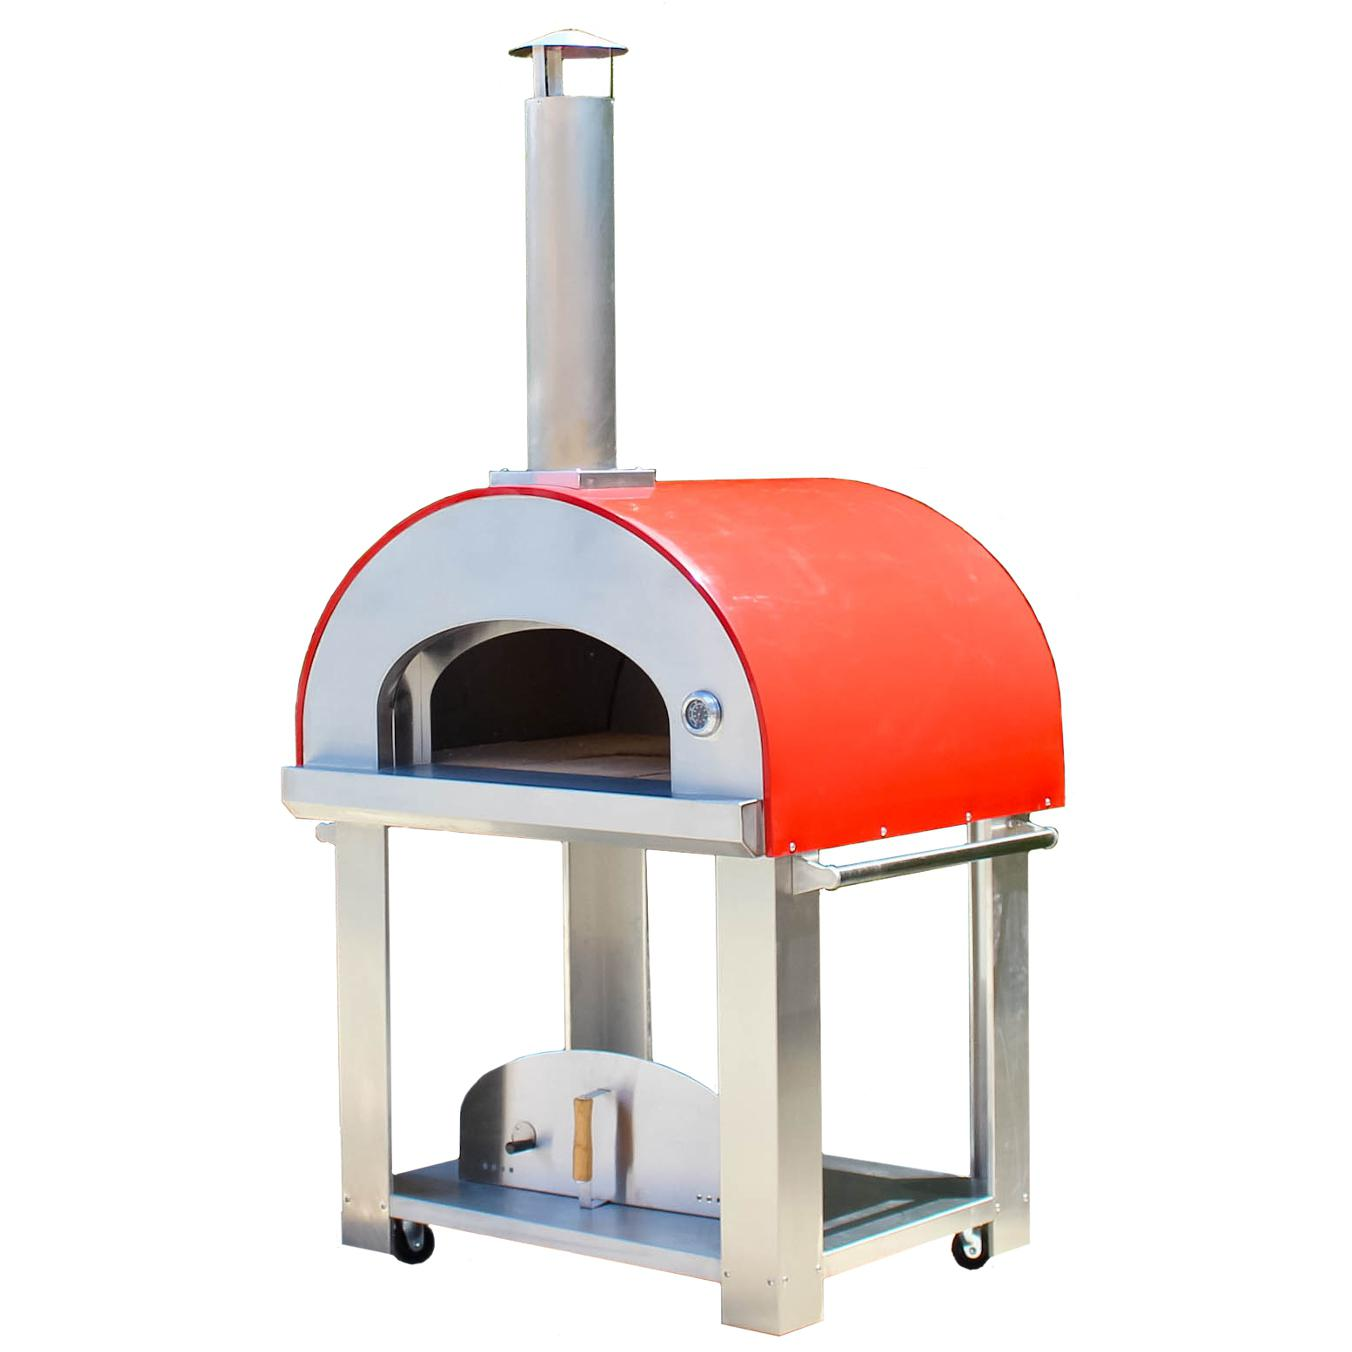 Bella Grande C36 (36 Inch) Wood Fired Outdoor Pizza Oven On Cart